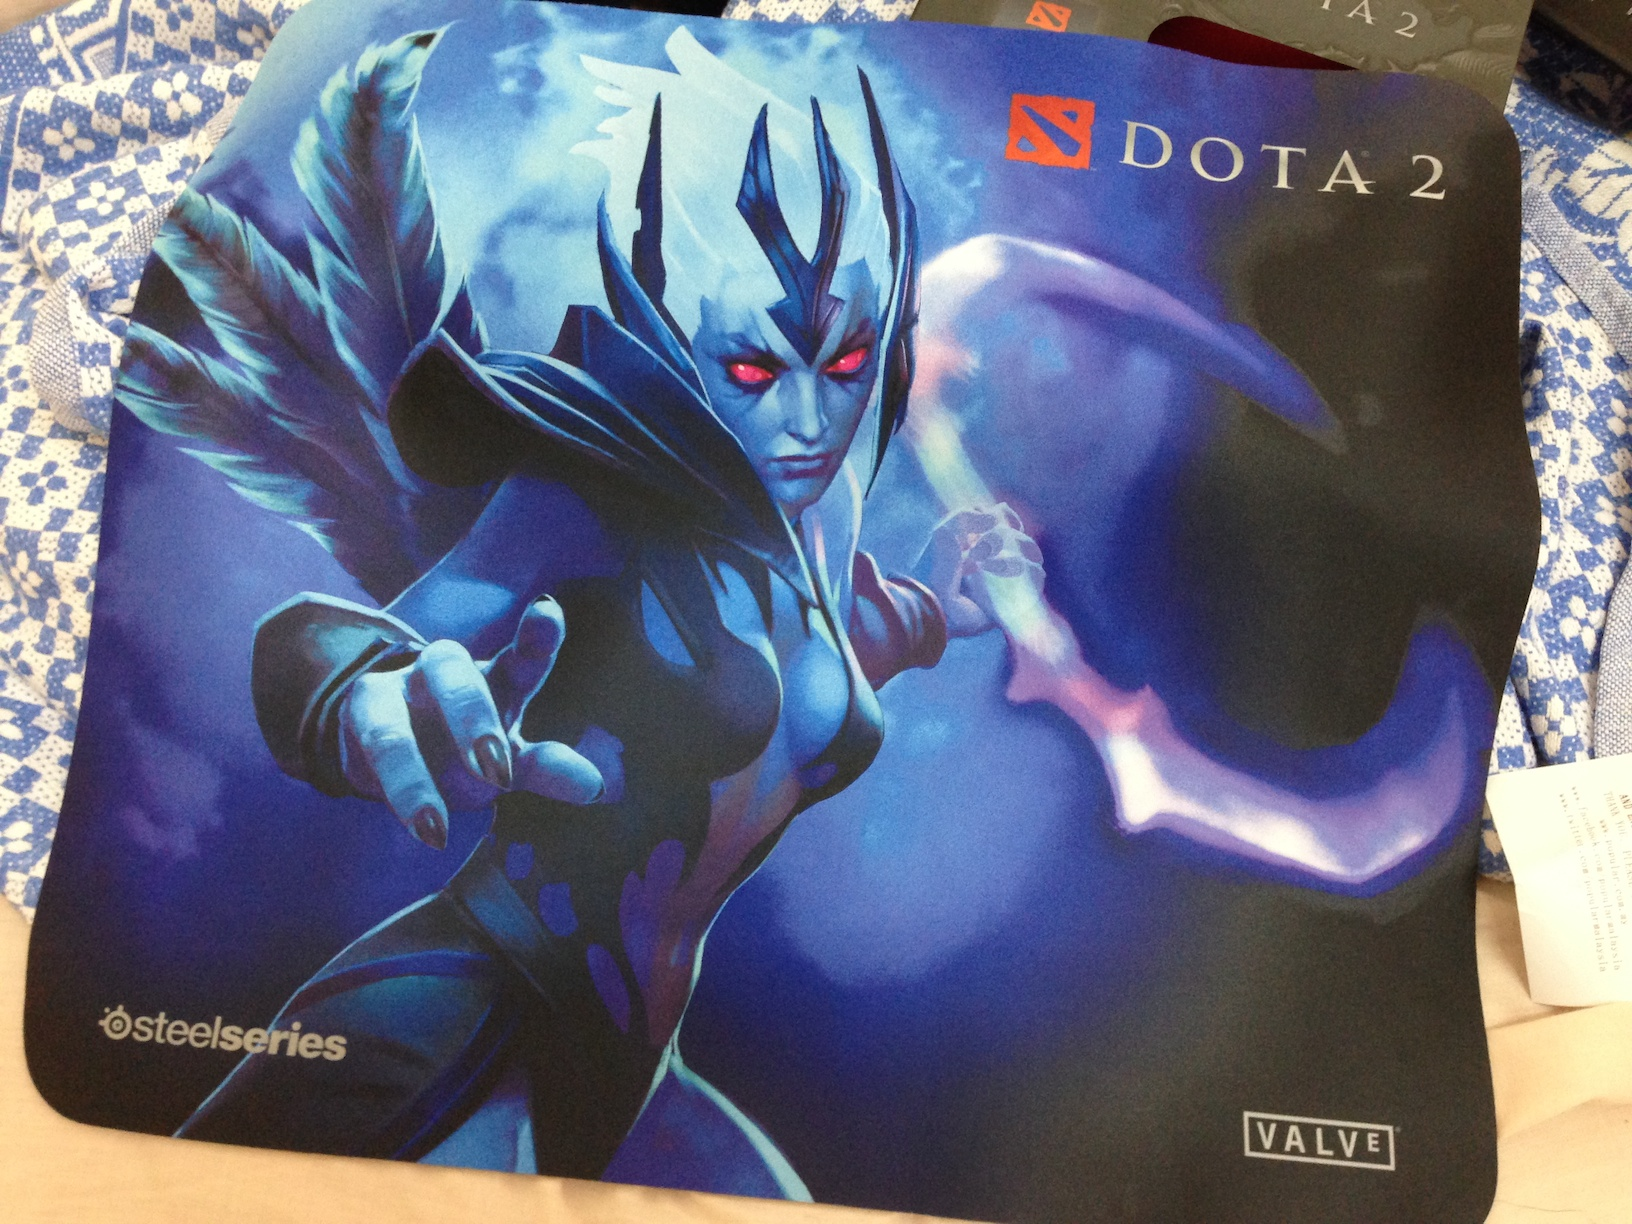 I've been playing a lot of Vengeful Spirit lately, and I saw this along with the SteelSeries Kana mouse. Had to have it.